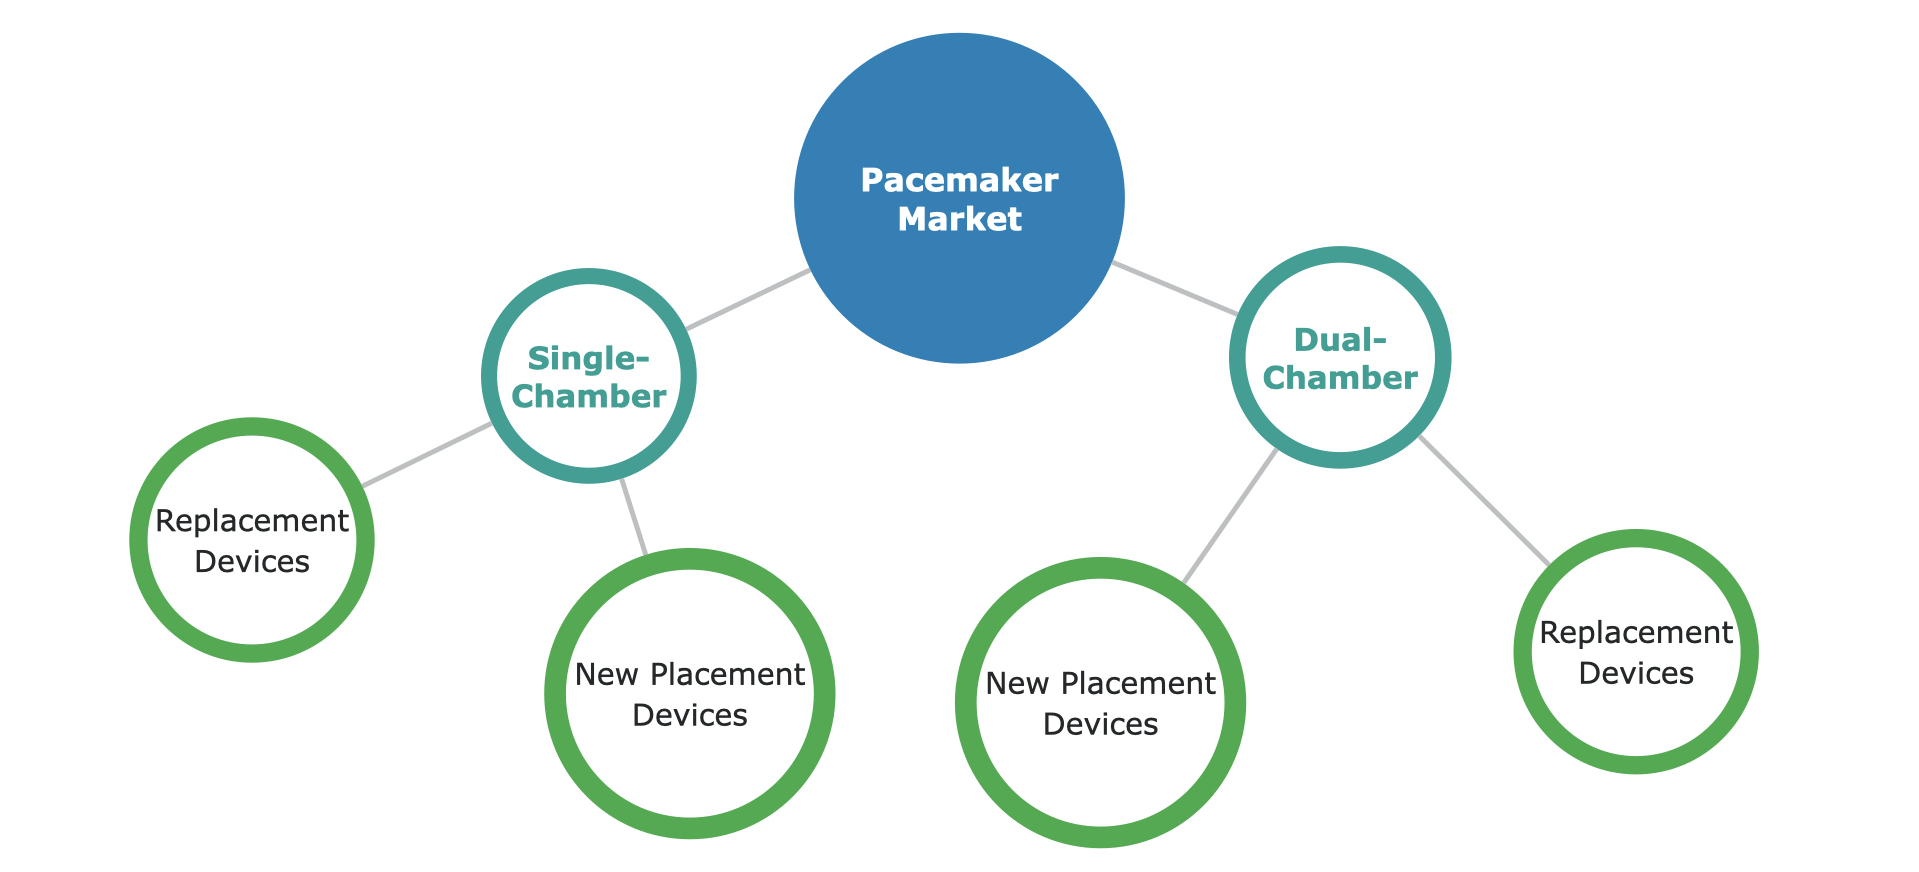 Global Pacemaker Market Segmentaiton